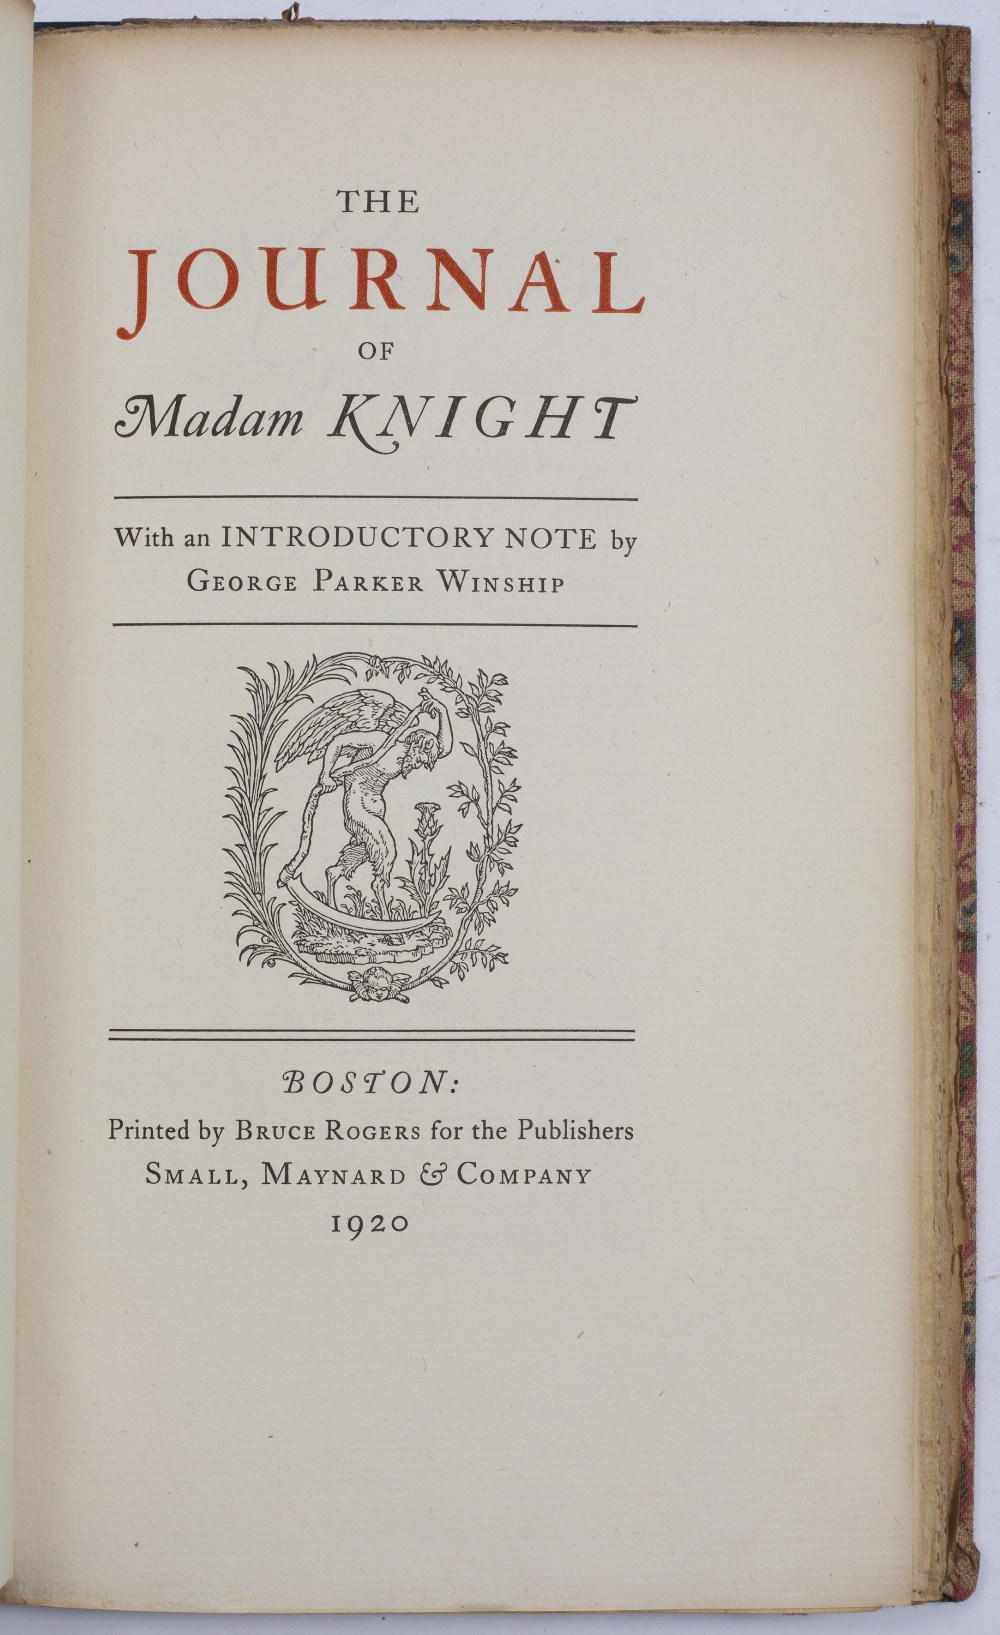 'THE PRIVATE JOURNAL OF MADAM KNIGHT' with an introductory note by George Parker Winship. Small - Image 2 of 3